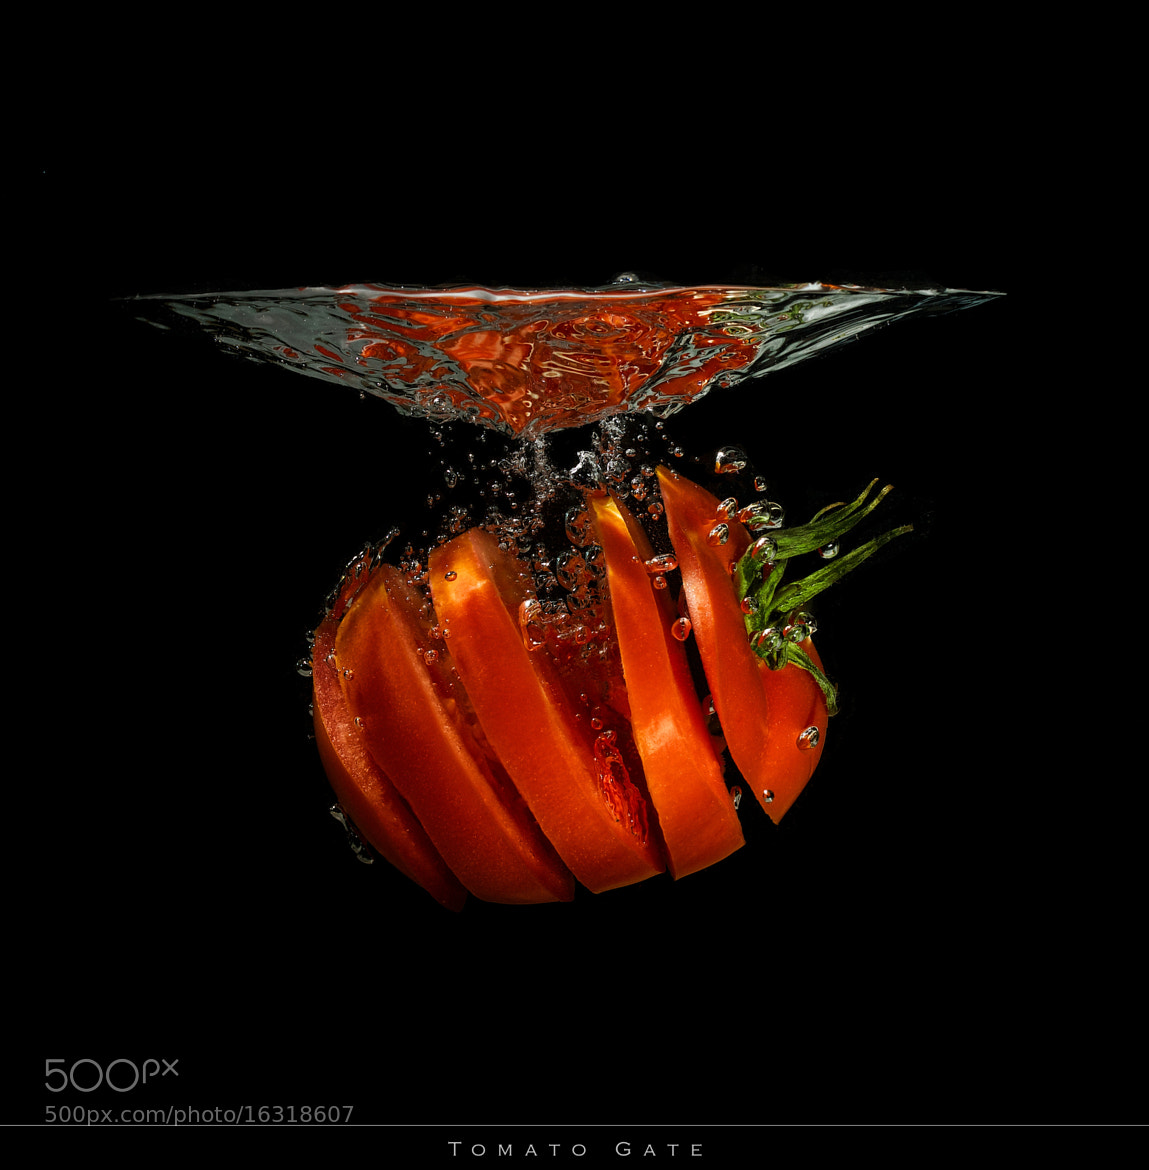 Photograph Tomato Gate by Benjamin gs on 500px